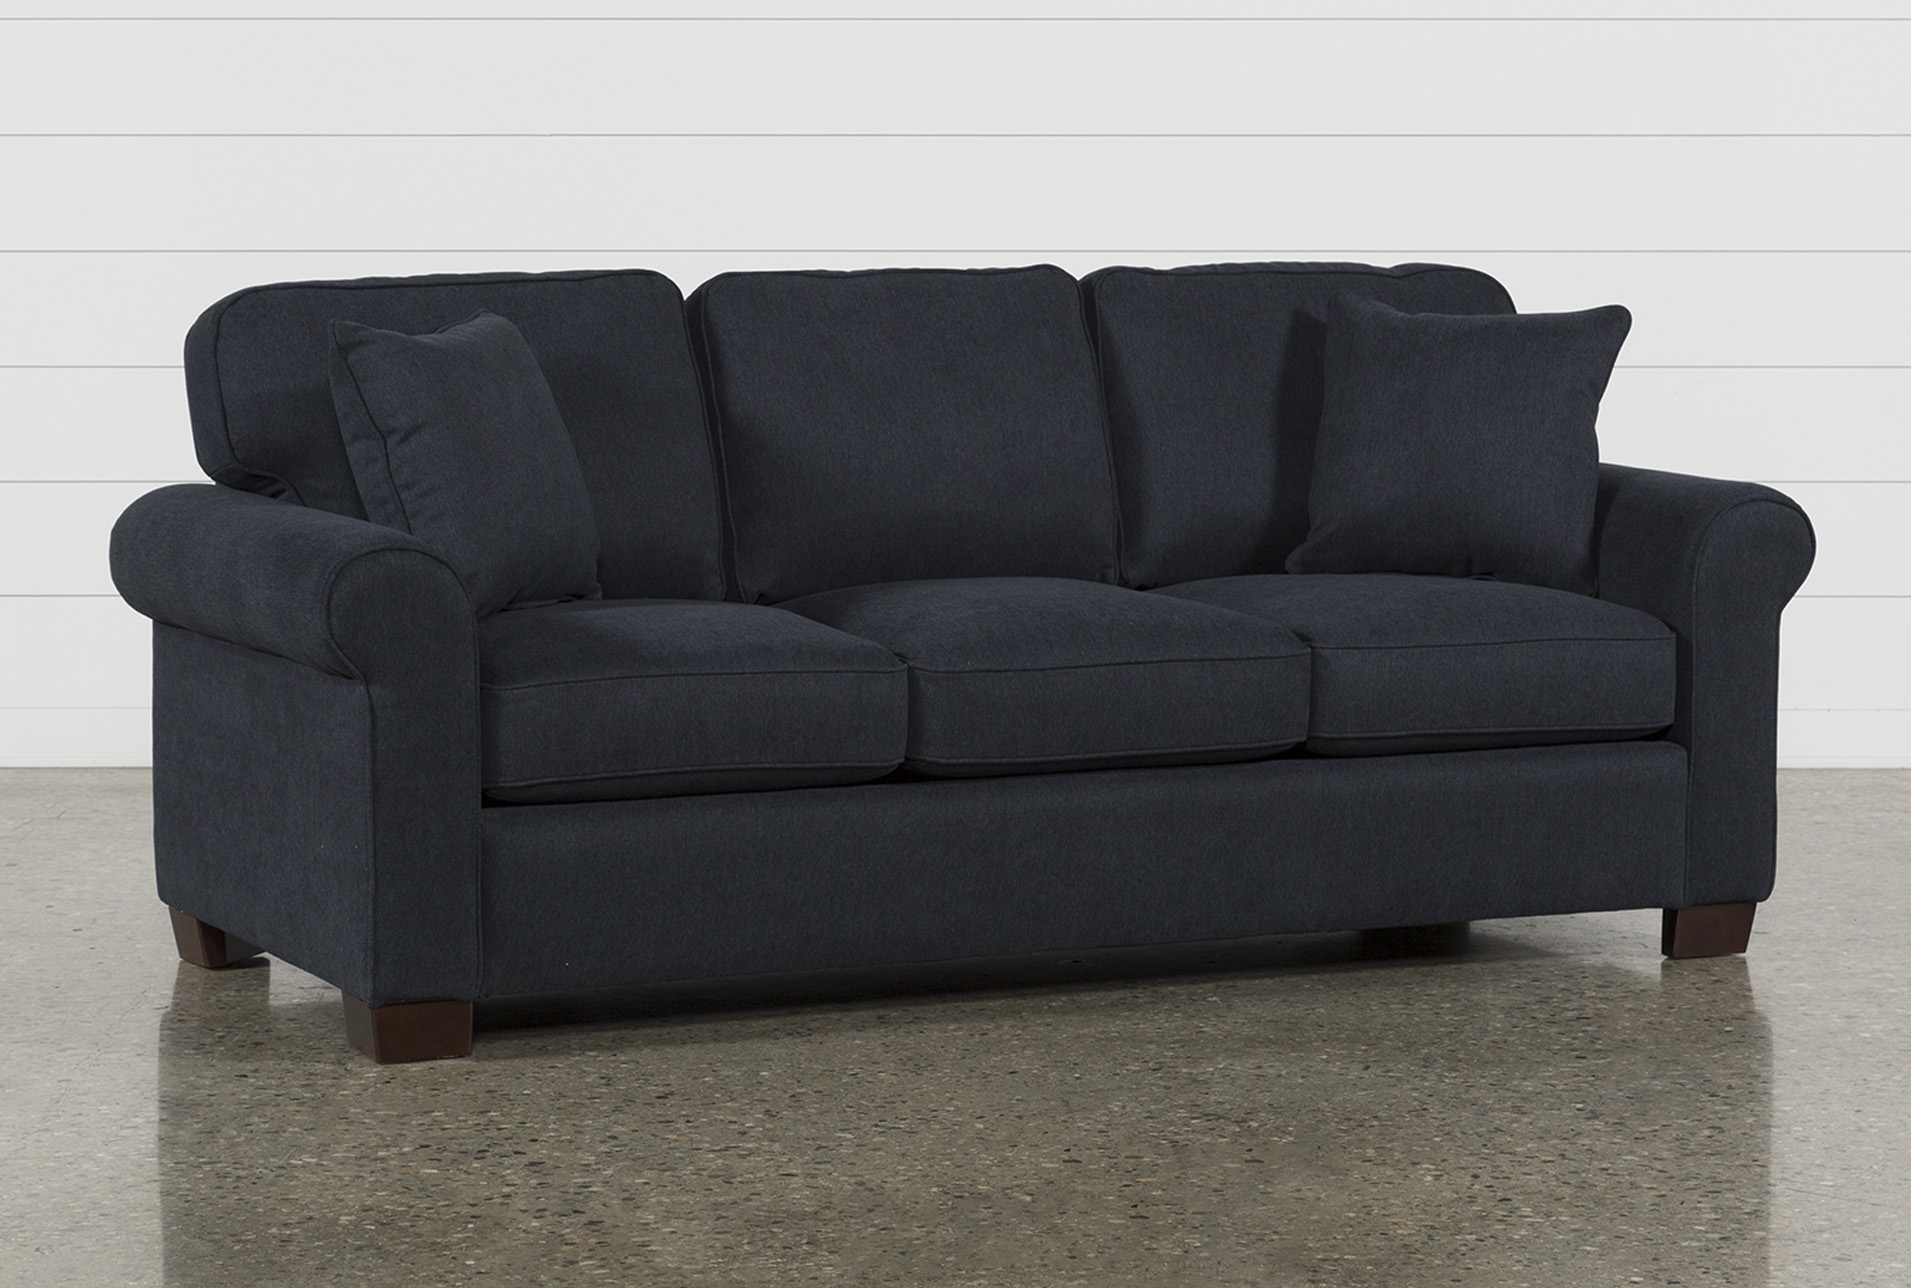 Sofa Beds + Sleeper Sofas - Free Assembly with Delivery   Living Spaces